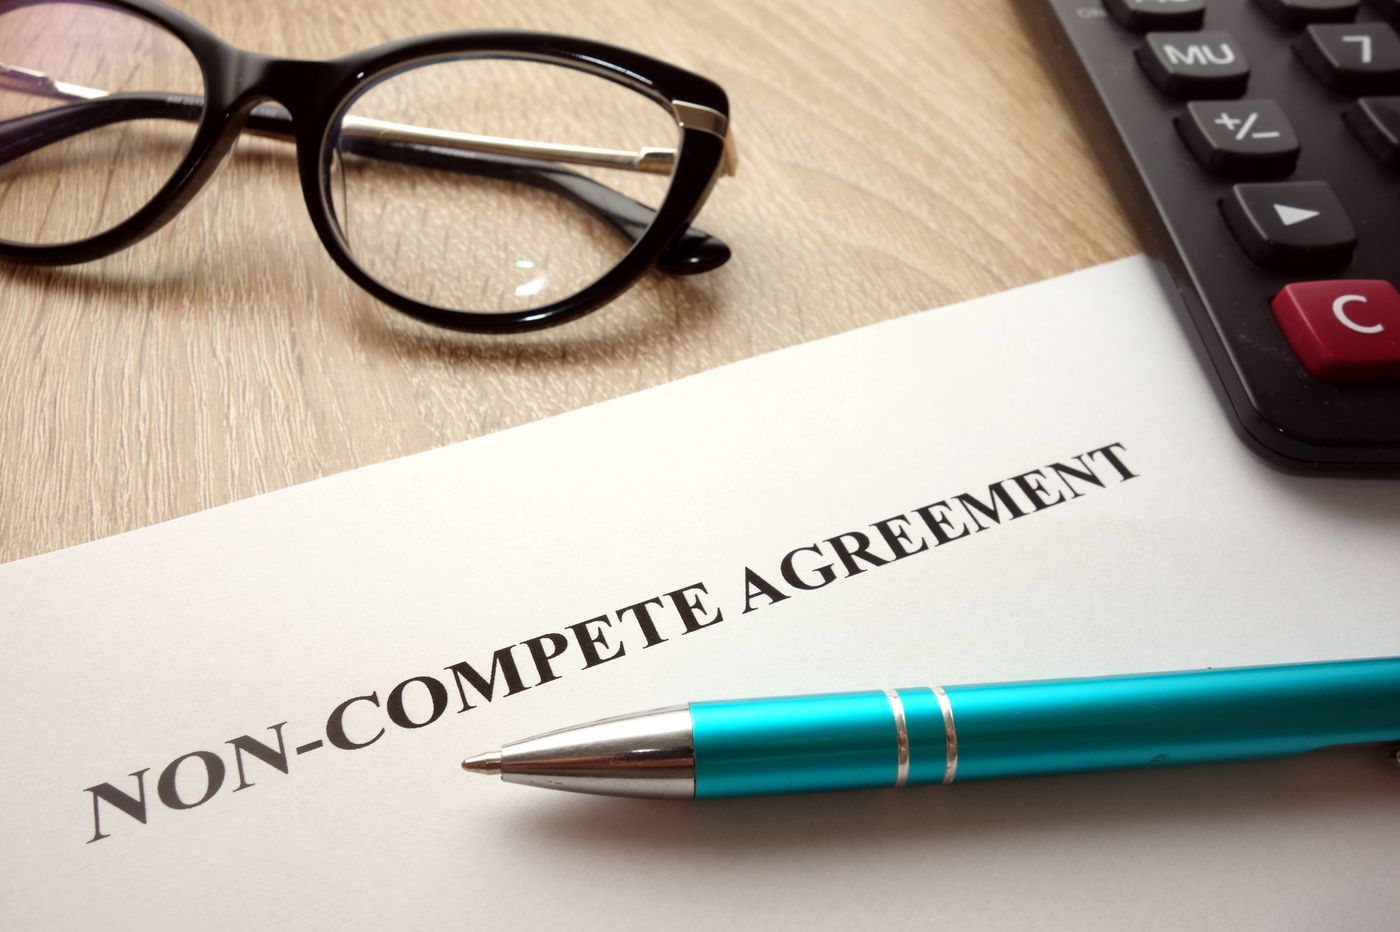 Send non-compete agreements back to Middle Ages | Opinion